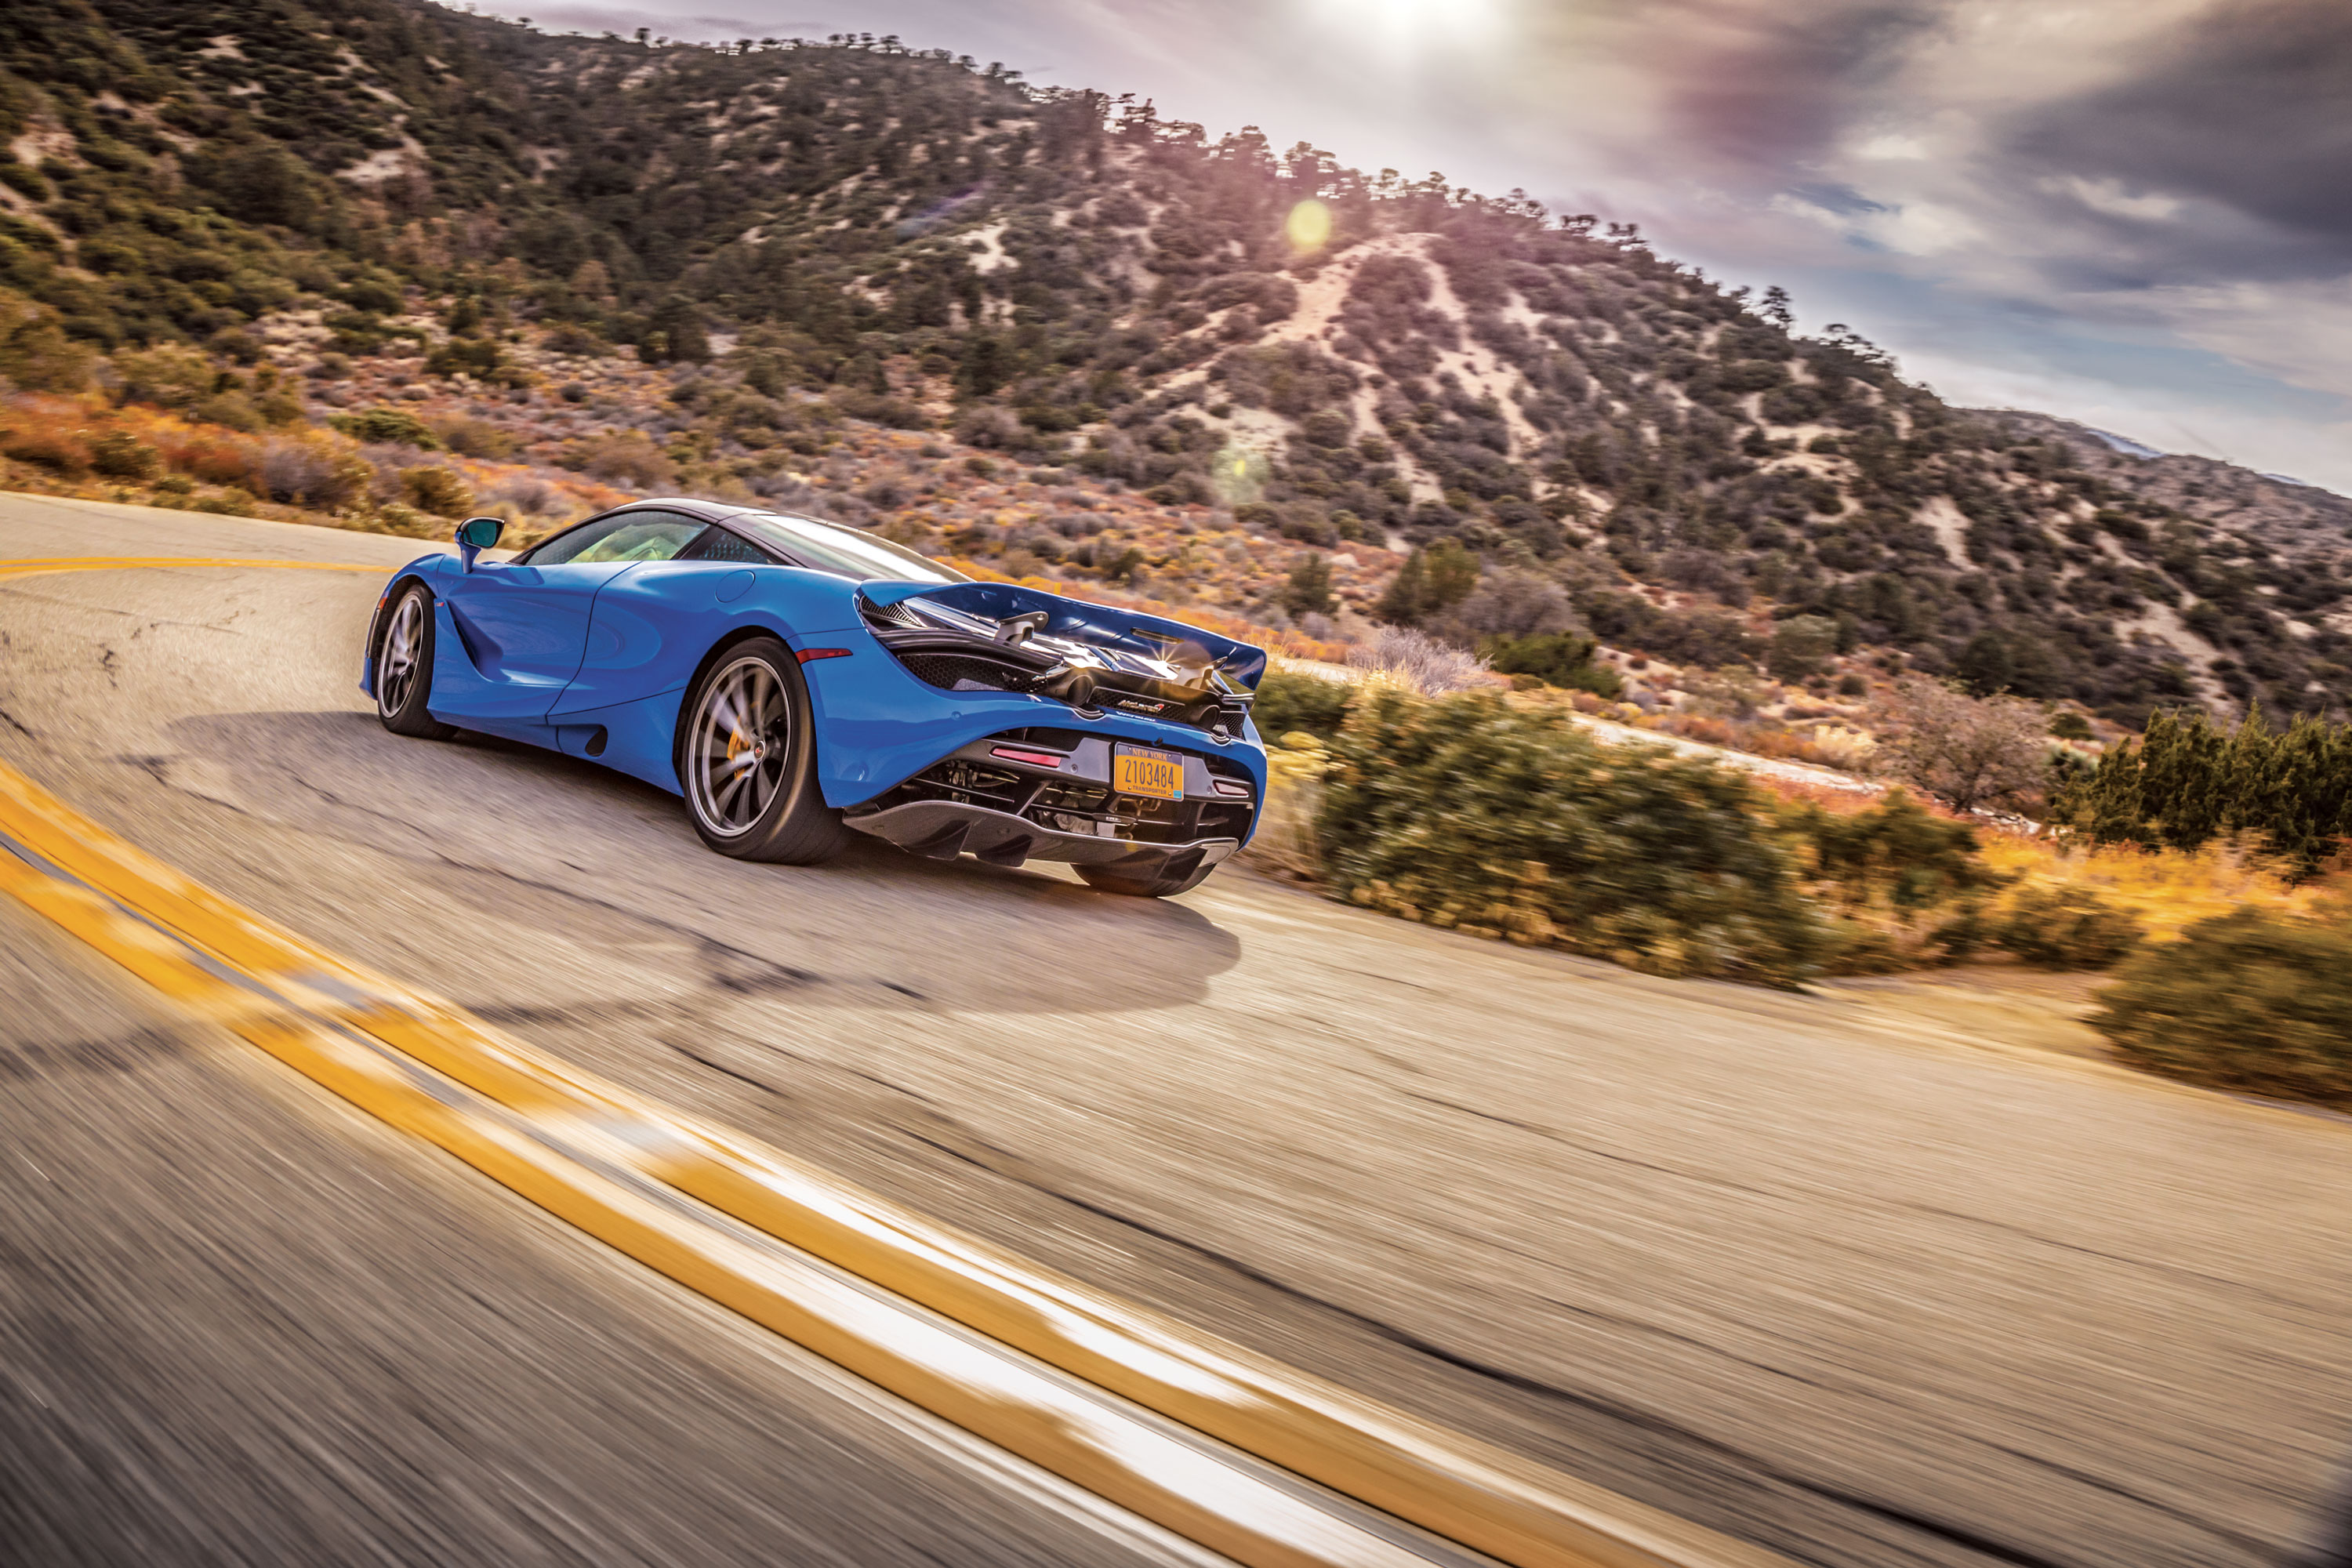 McLaren's mostly carbon-fiber 720S makes everything easier with nearly 360-degree glass for jet-canopy visibility, relaxed entry via revised dihedral doors, and push-button controls. It's nearly as quick as a Bugatti Veyron, partly because it's almost 1000 pounds lighter.